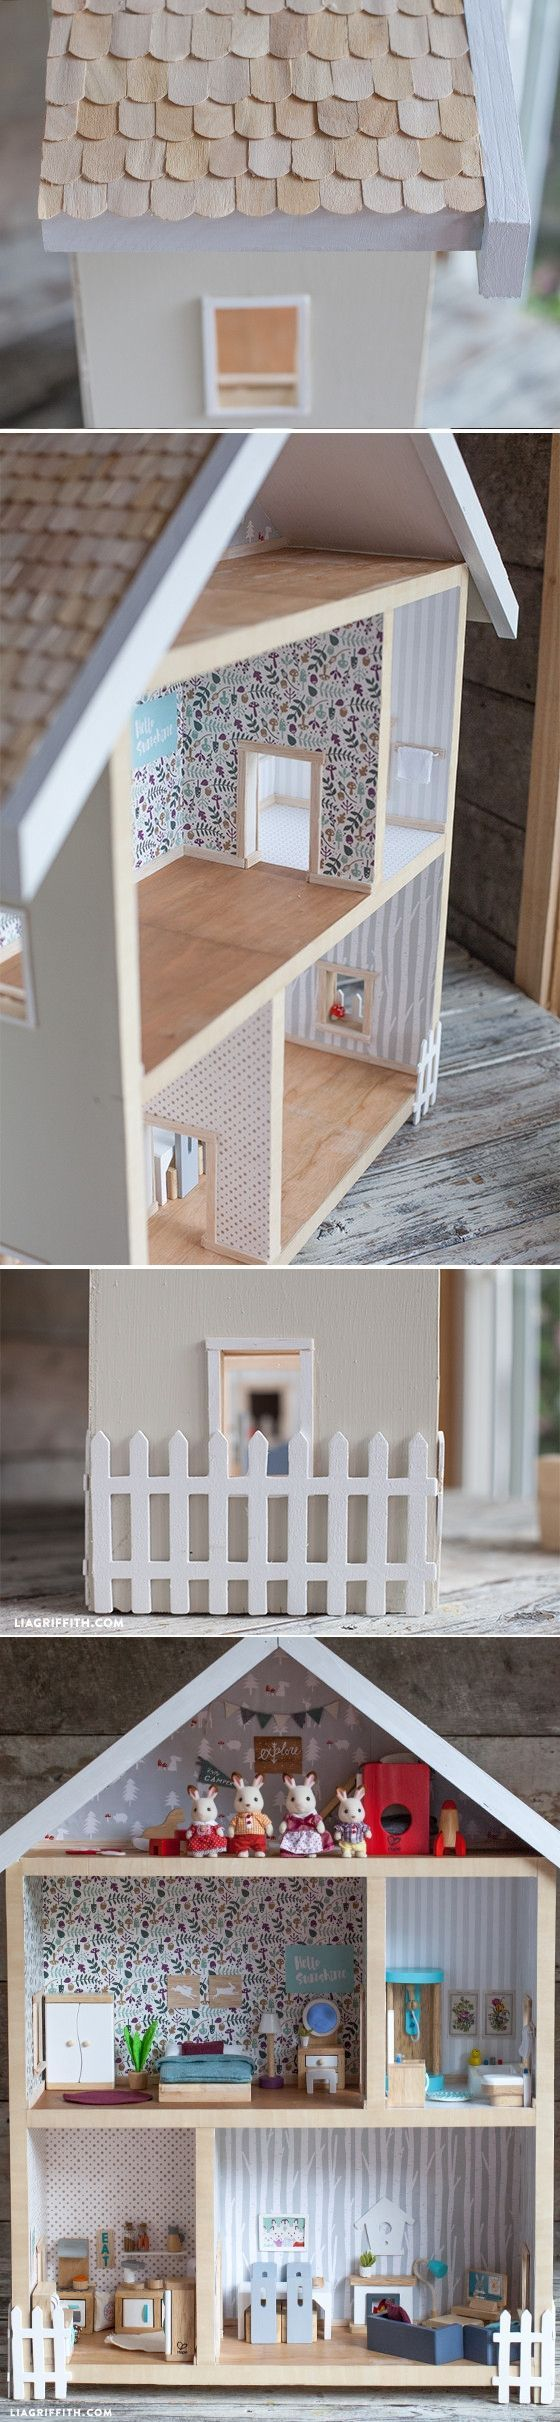 Give A Home - Make Your Own Dollhouse | Recortes de madera, Recortes ...